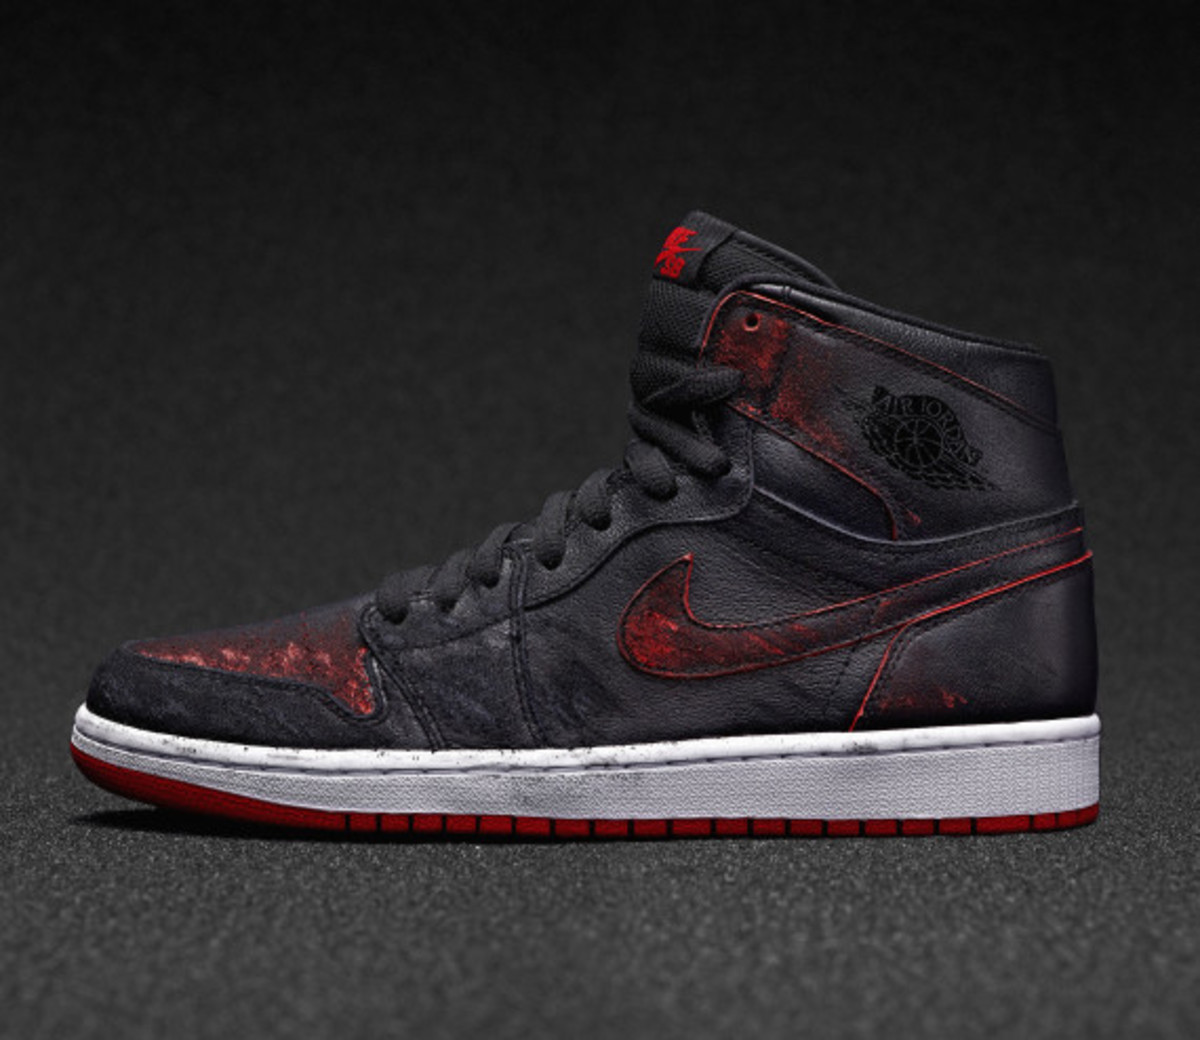 Nike SB x Air Jordan 1 by Lance Mountain - Officially Unveiled - 2